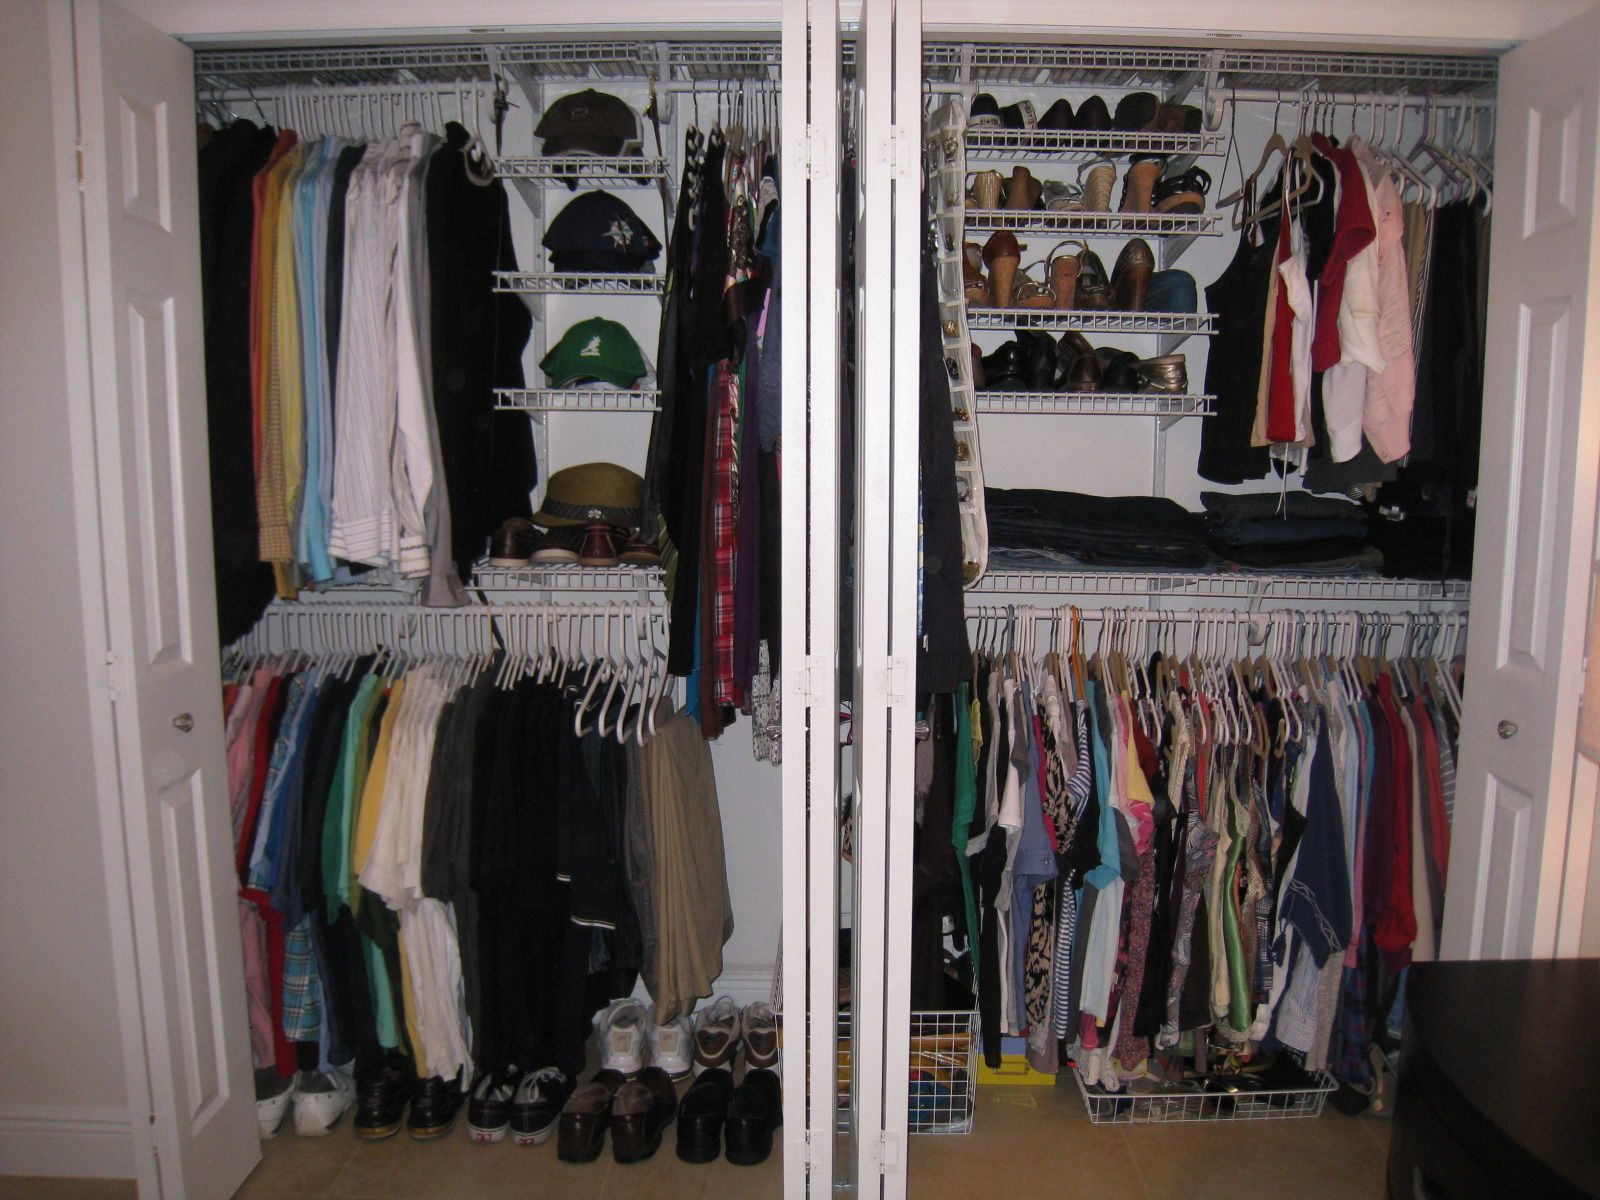 Tidy Floating Shoes Shelves and Clothes Hangers using Interesting Closet Organization Ideas with White Flipped Doors